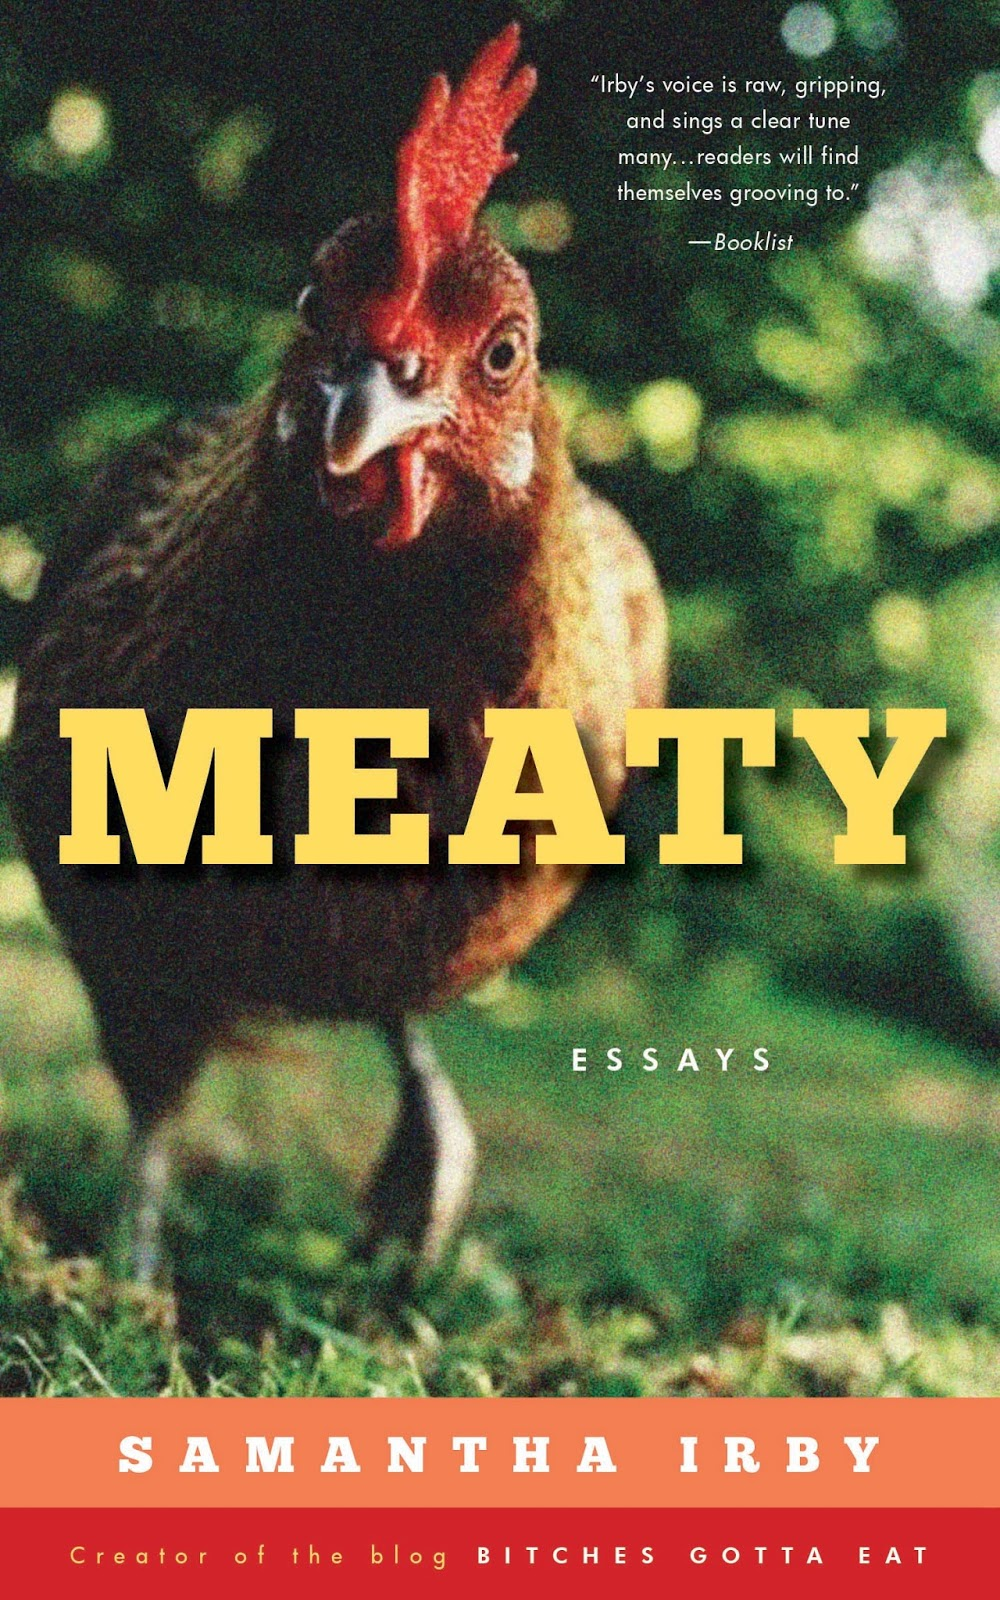 reading rambo samantha irby and meaty right now i am living in samantha irby and meaty right now i am living in a post breakup body